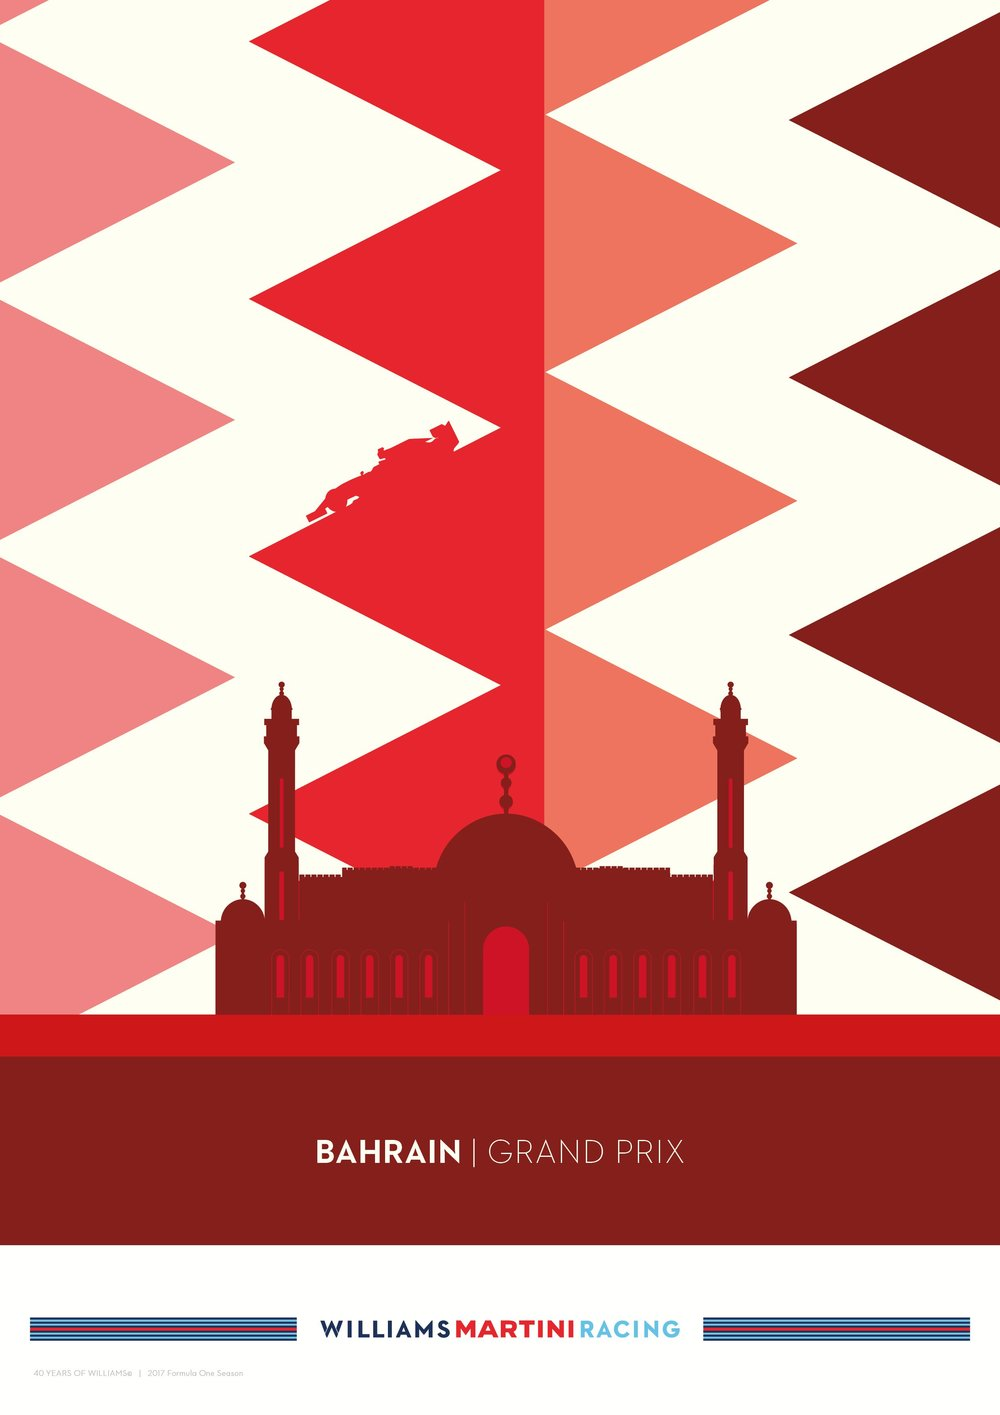 bahrain-gp-williams-poster-2017.jpg